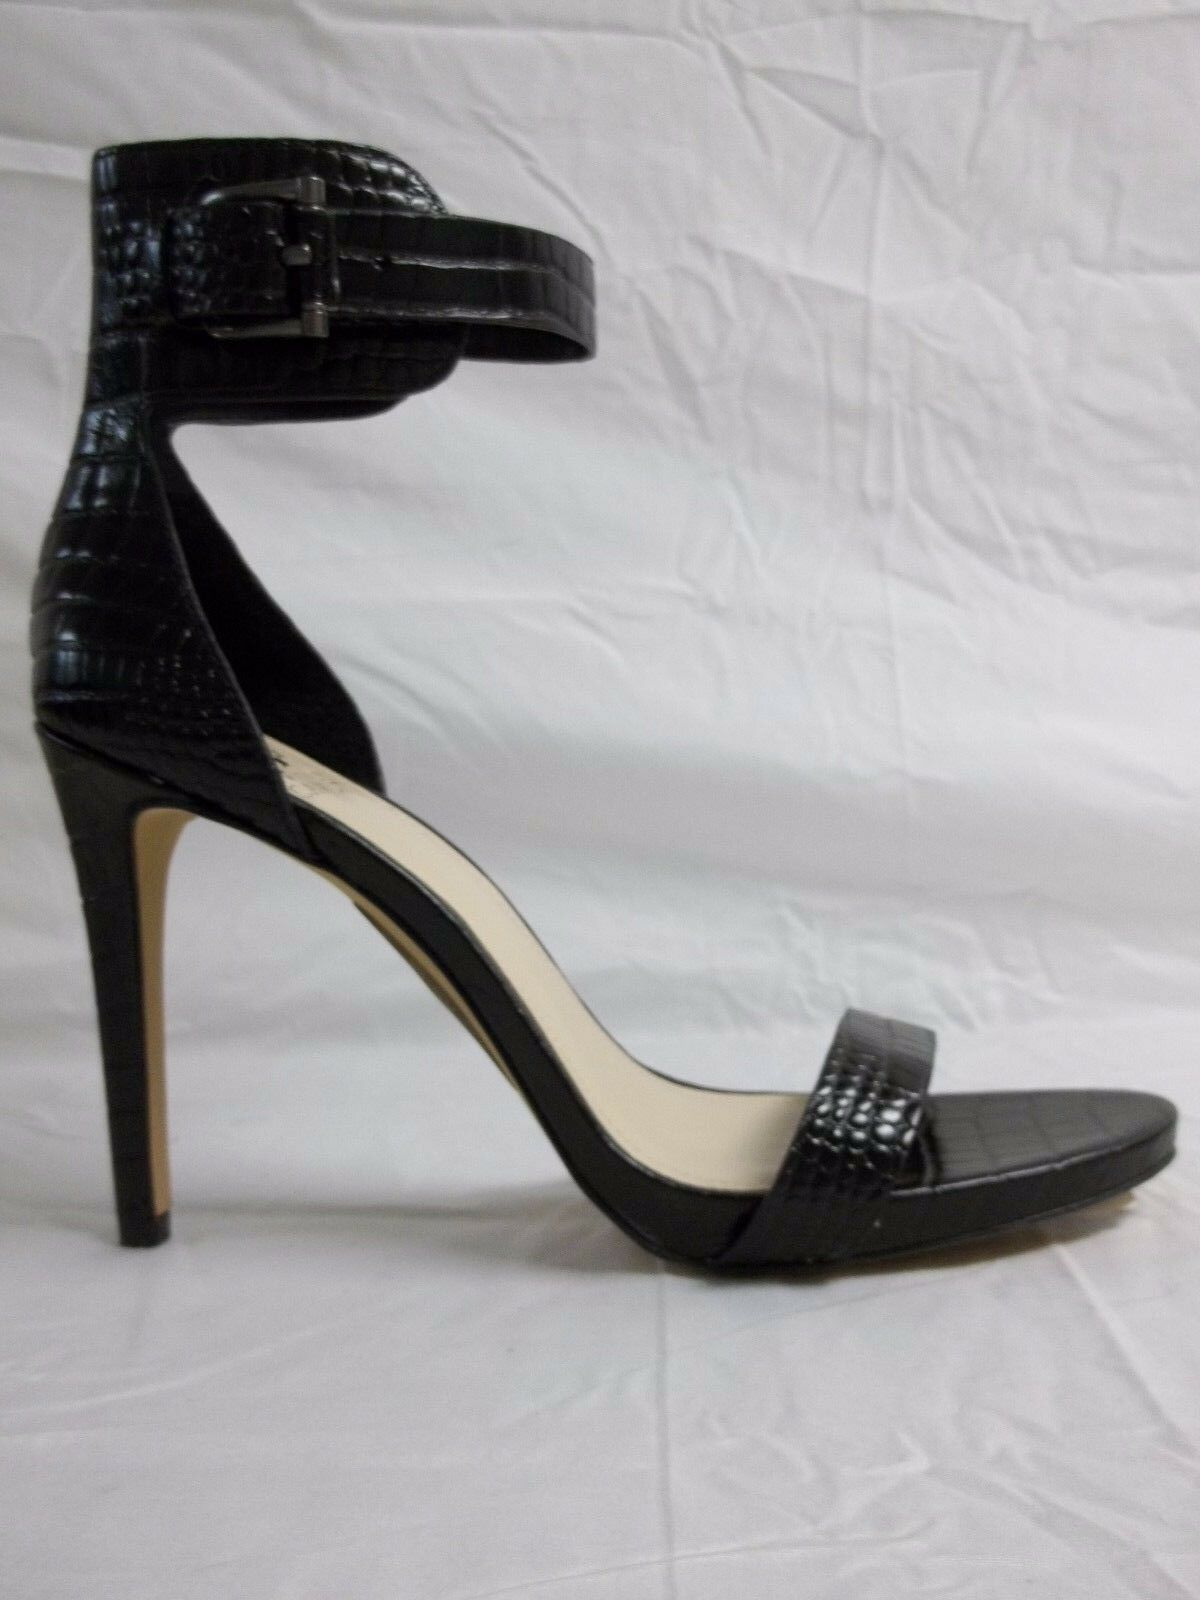 Vince Camuto Size 9 M Farella Black Leather Leather Leather Open Toe Heels New Womens shoes NWB 8daad0